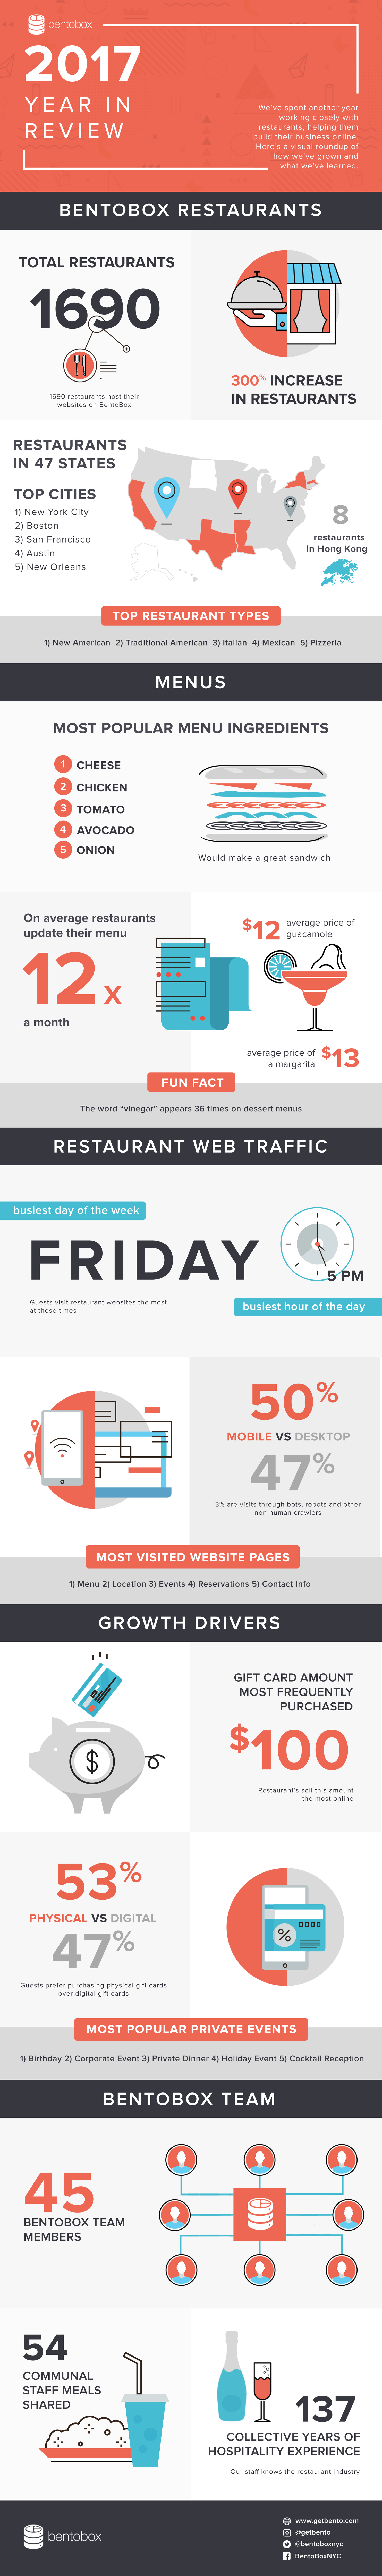 Restaurant Digital Trends 2017 Year In Review Infographic